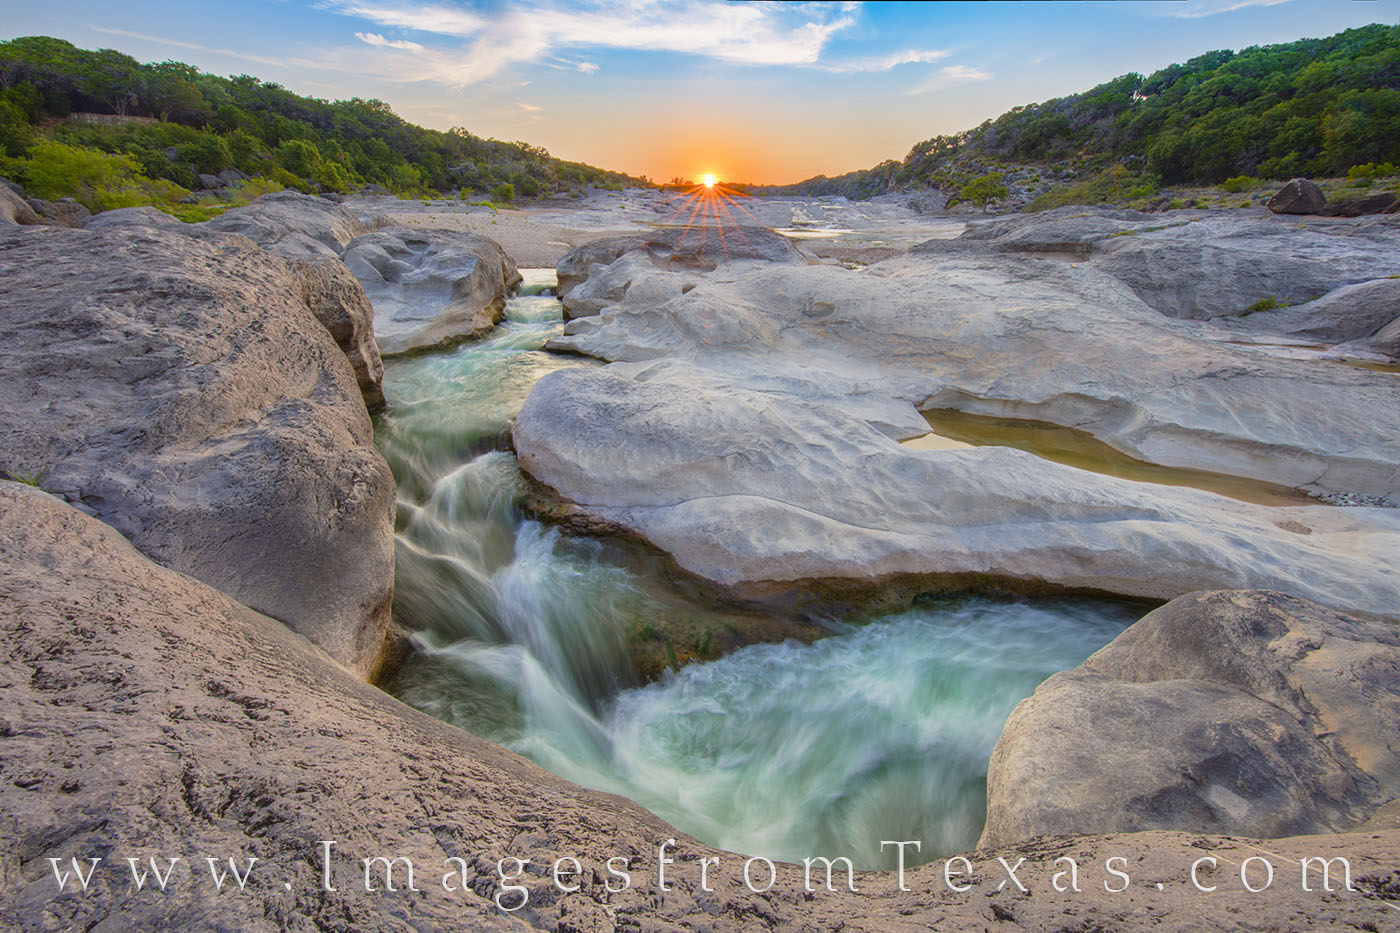 pedernales river, sunset, texas hill country, river, water, state park, pedernales falls, peace, solitude, photo